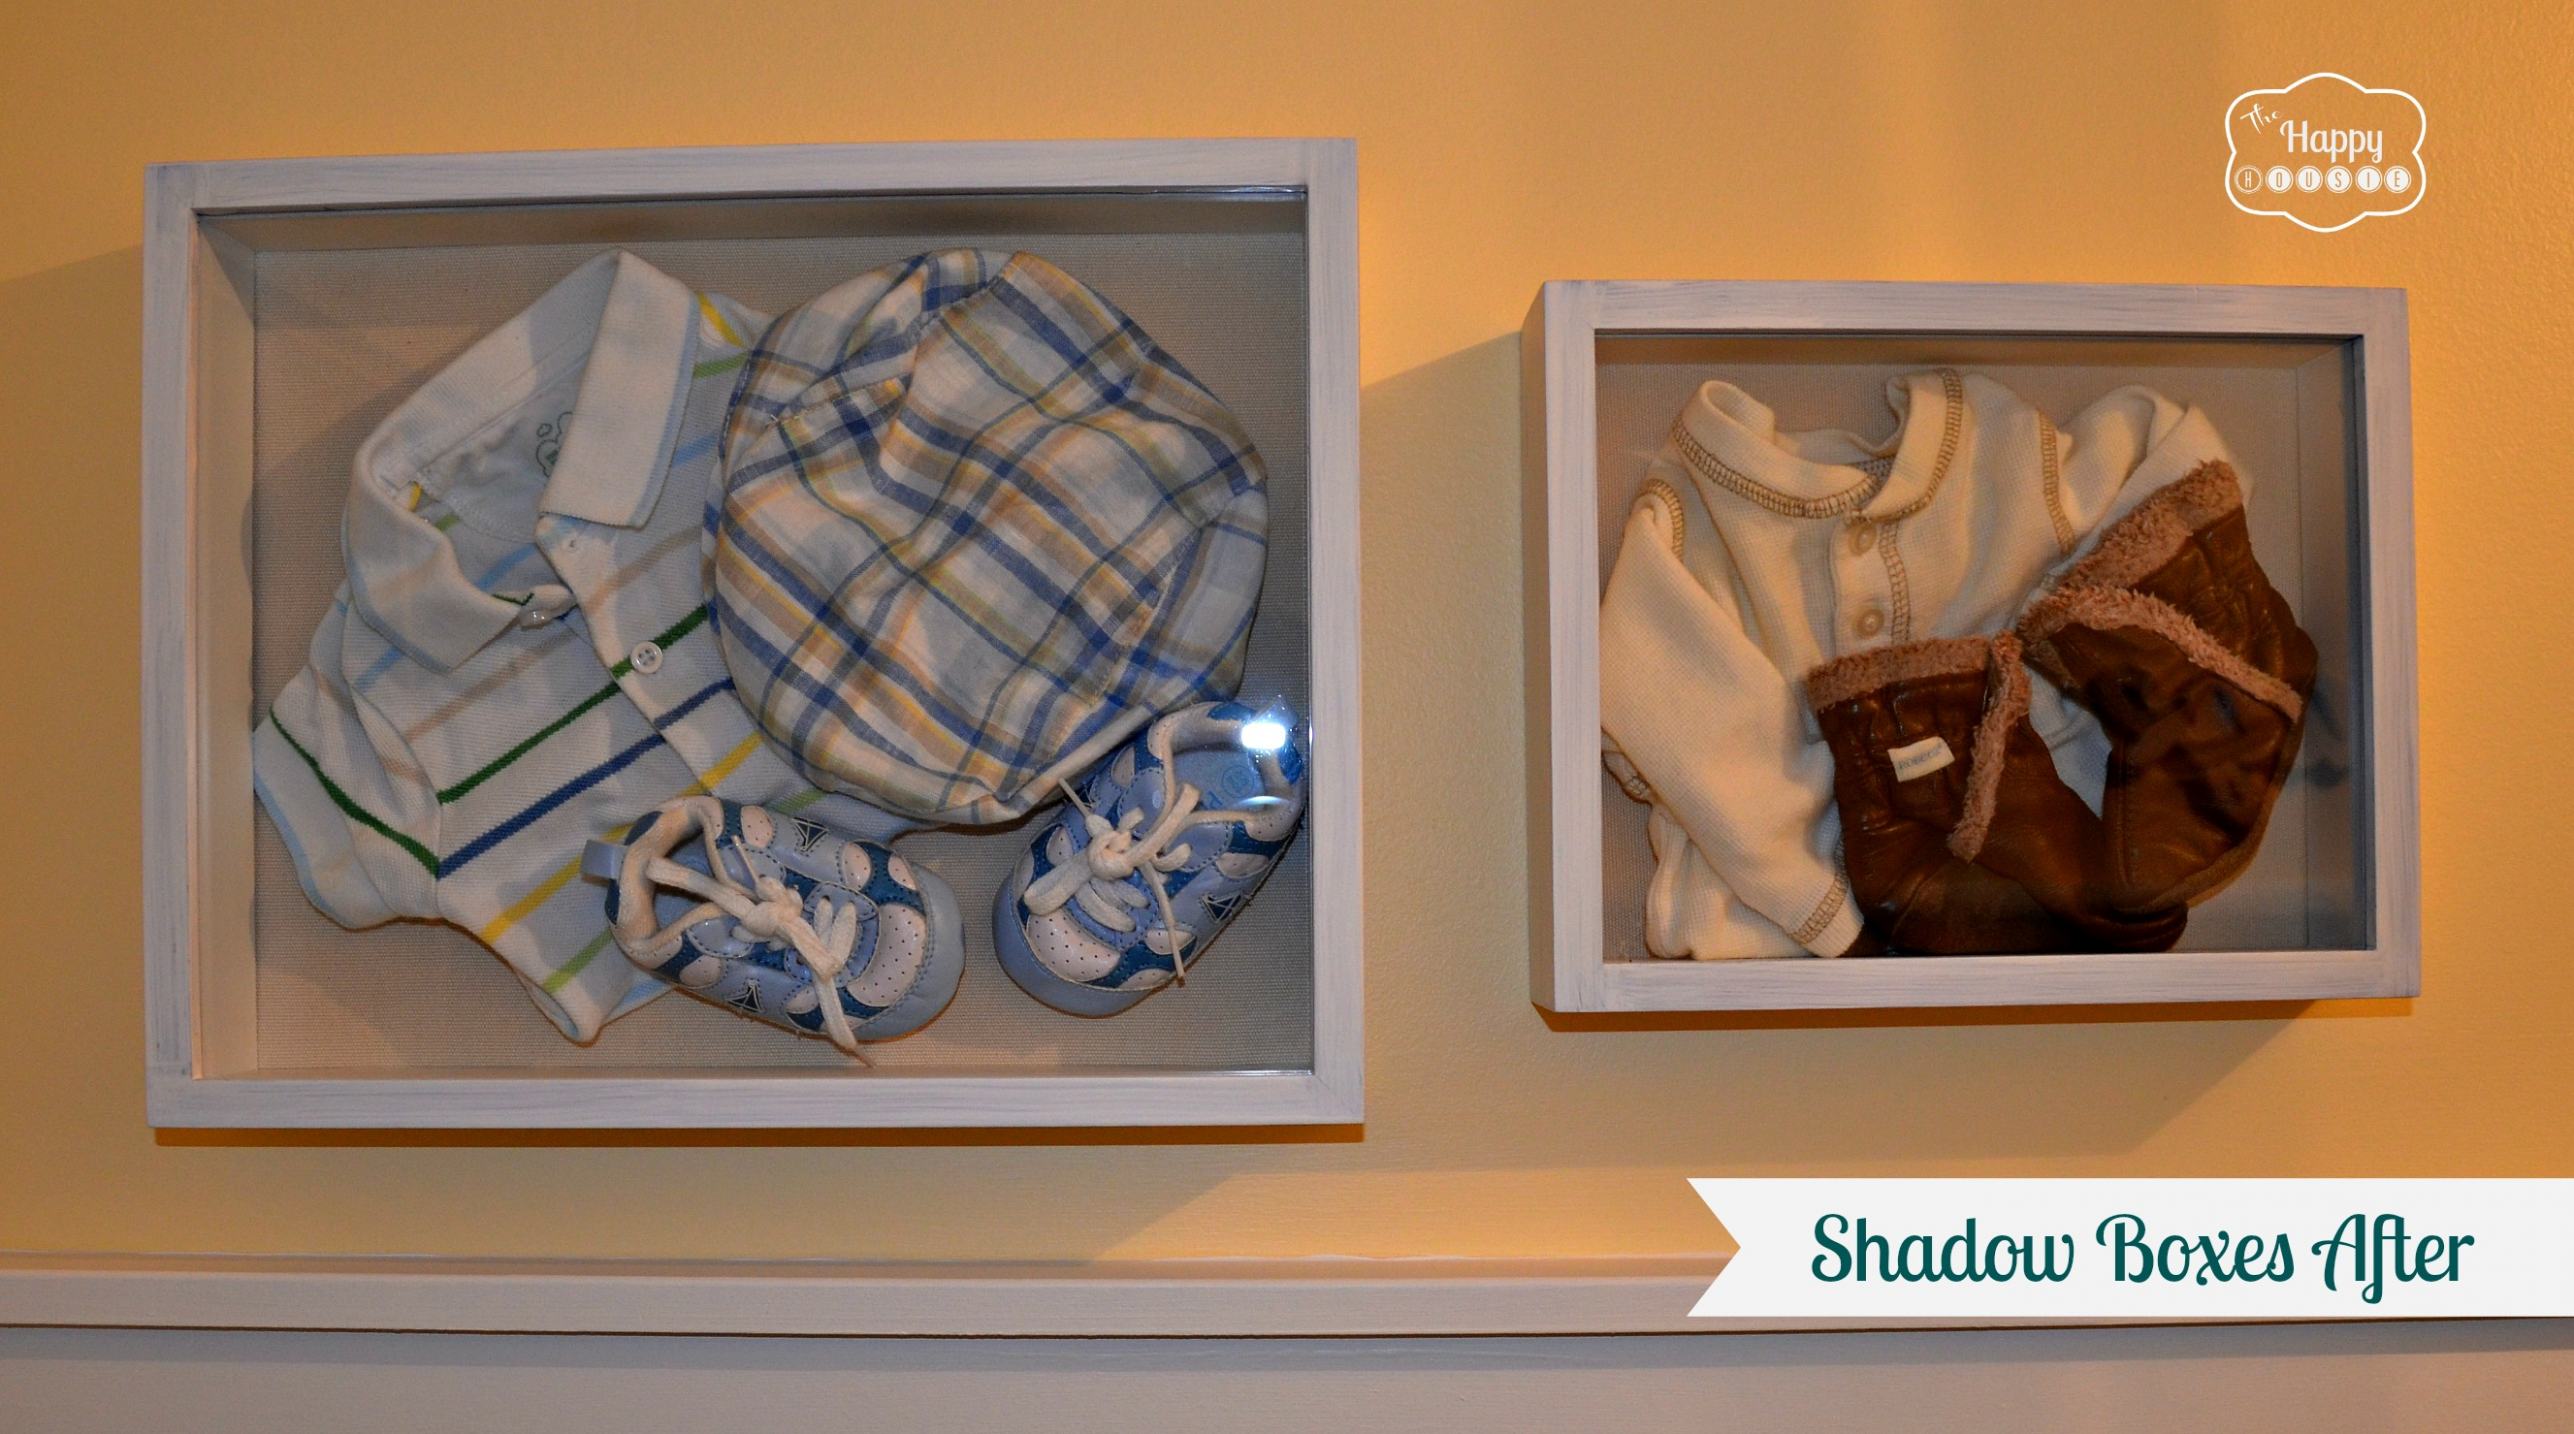 Decorating: Some DIY Art for the Laundry Room | The Happy Housie - laundry room art ideas